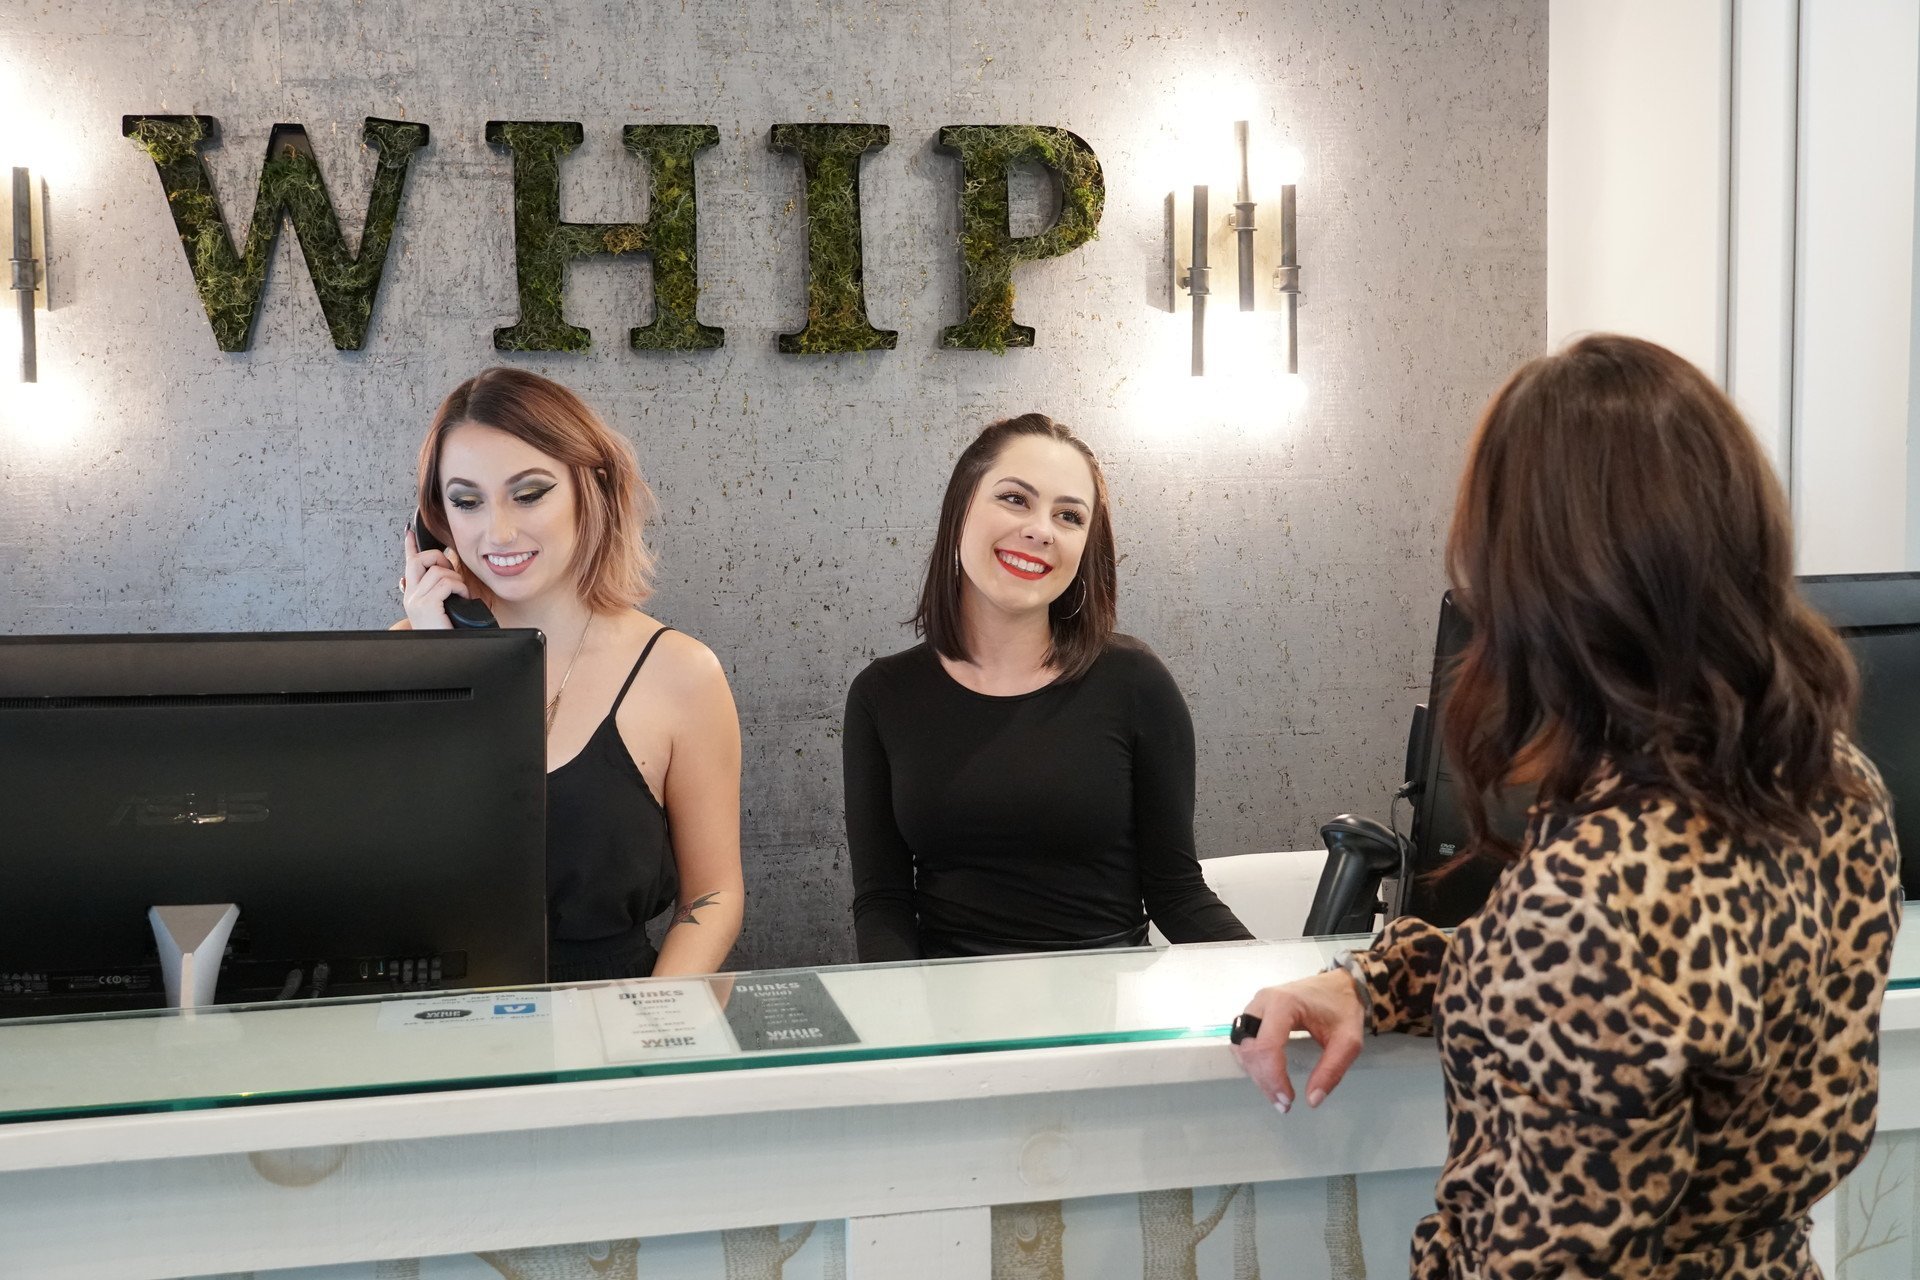 <p><strong>A Whip Salon franchise salon in Connecticut brought together an eager new owner and a veteran ready to move on to a new phase of her career.</strong></p>